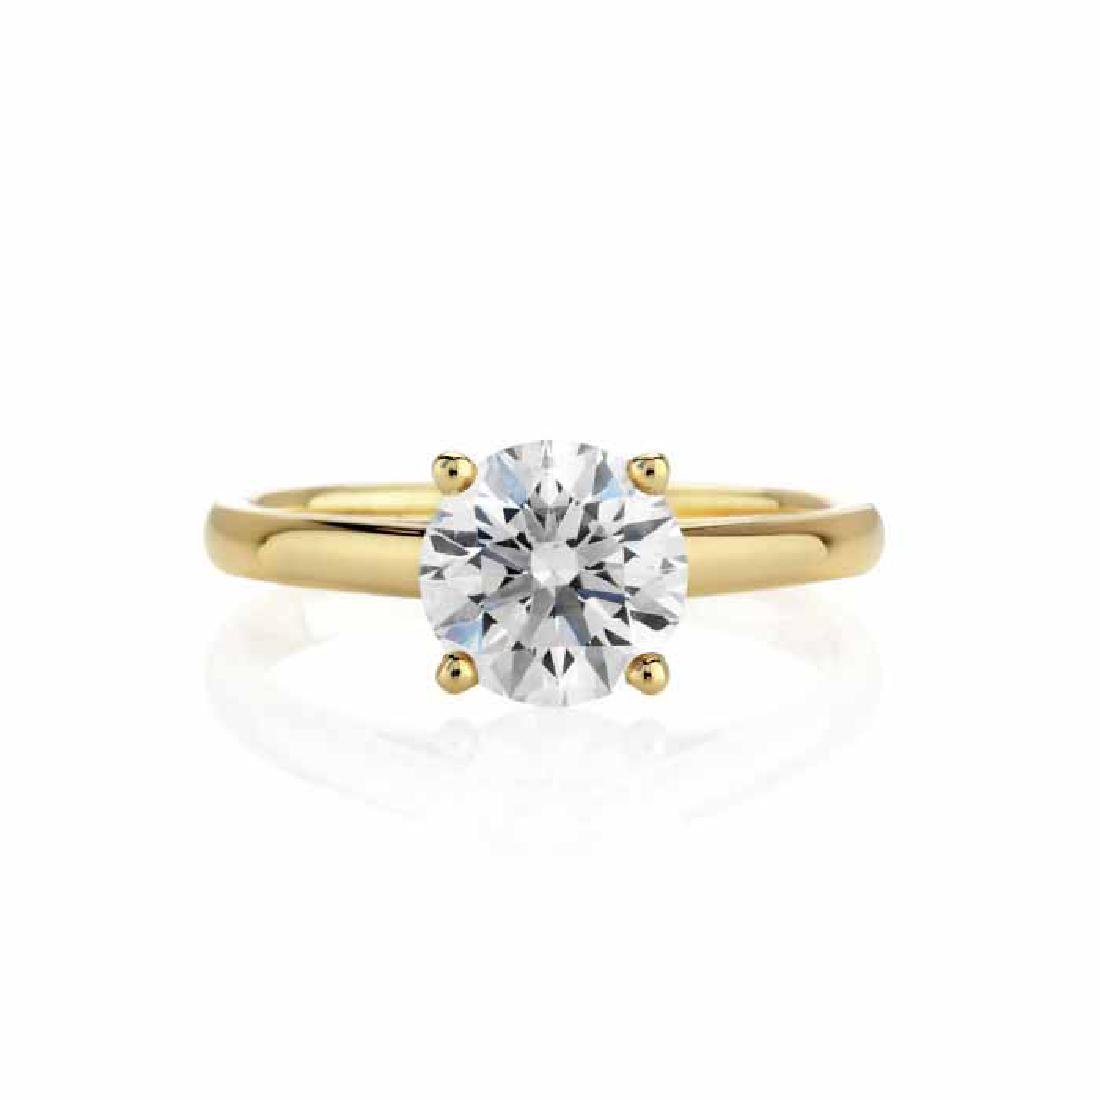 CERTIFIED 0.5 CTW E/I1 ROUND DIAMOND SOLITAIRE RING IN